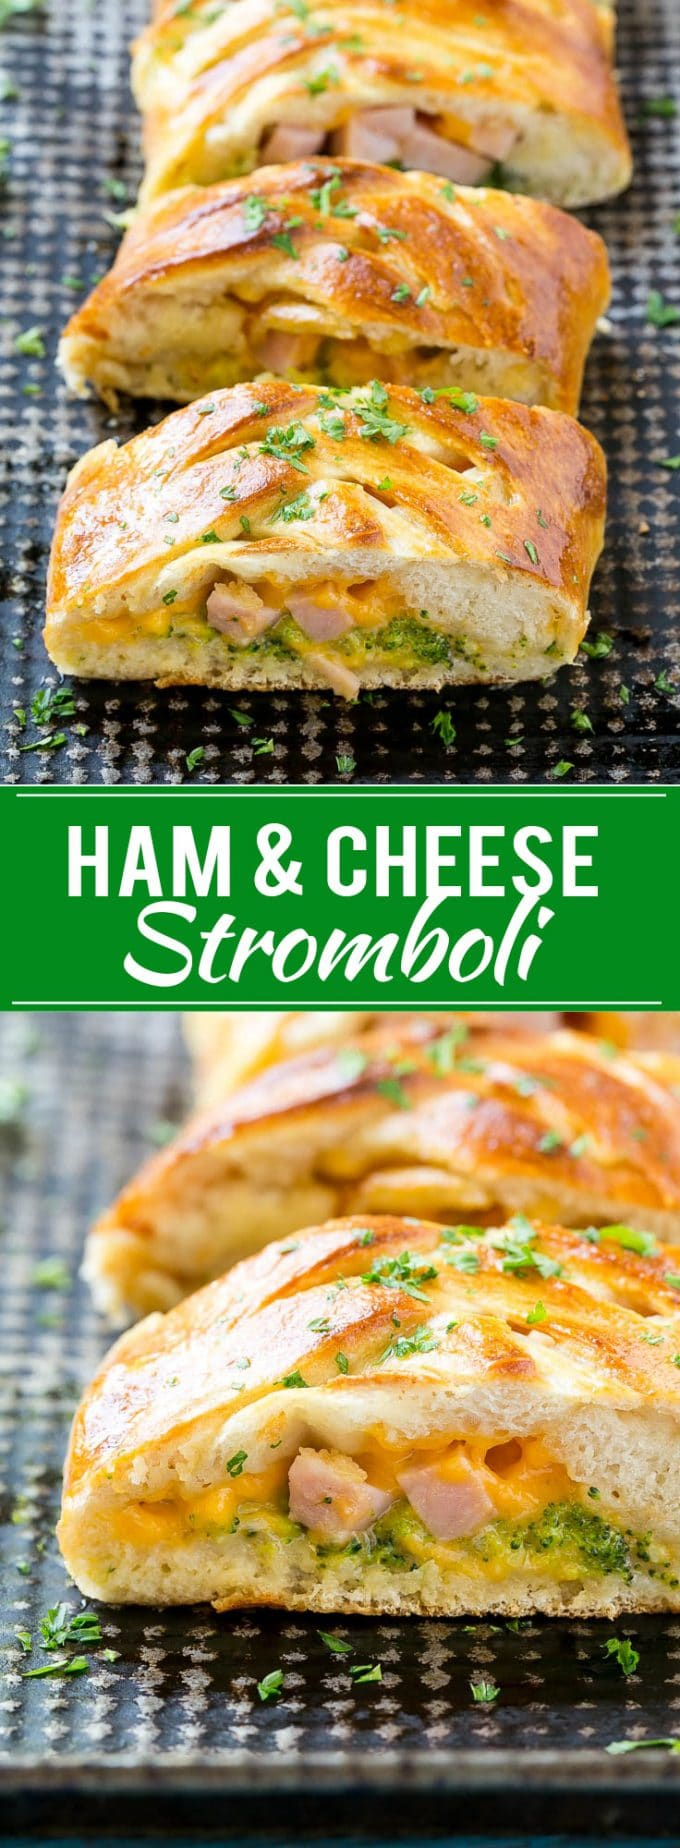 Ham and Cheese Stromboli Recipe | Easy Stromboli Recipe | Leftover Ham Recipe